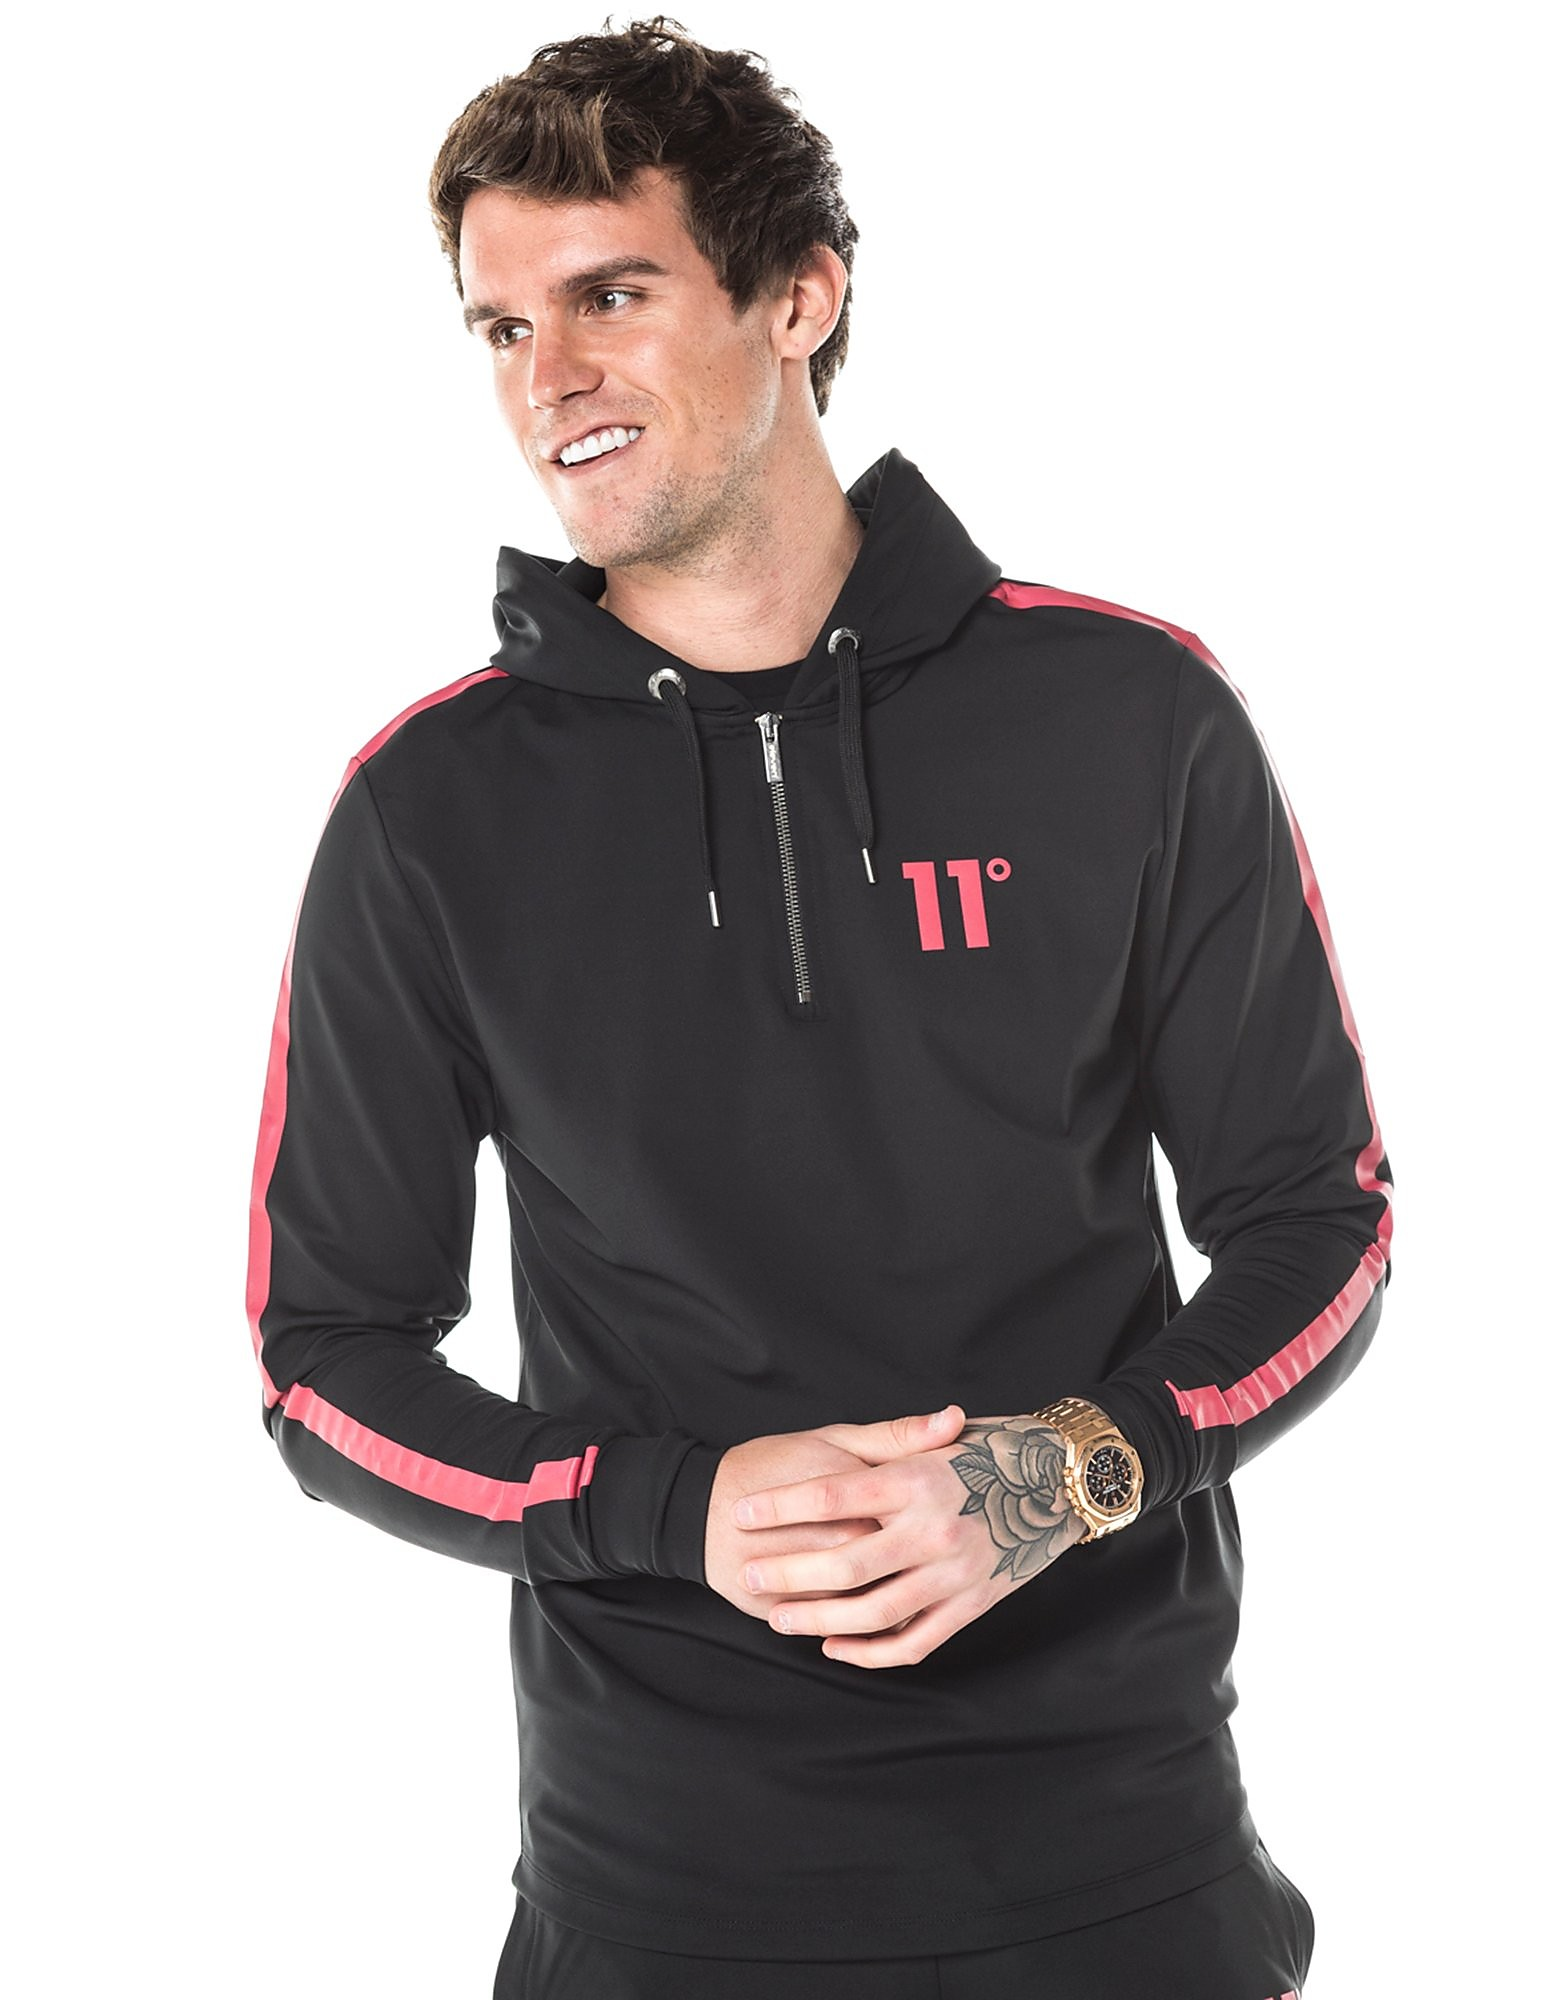 11 Degrees 1/4 Zip Poly Reflective Hoodie